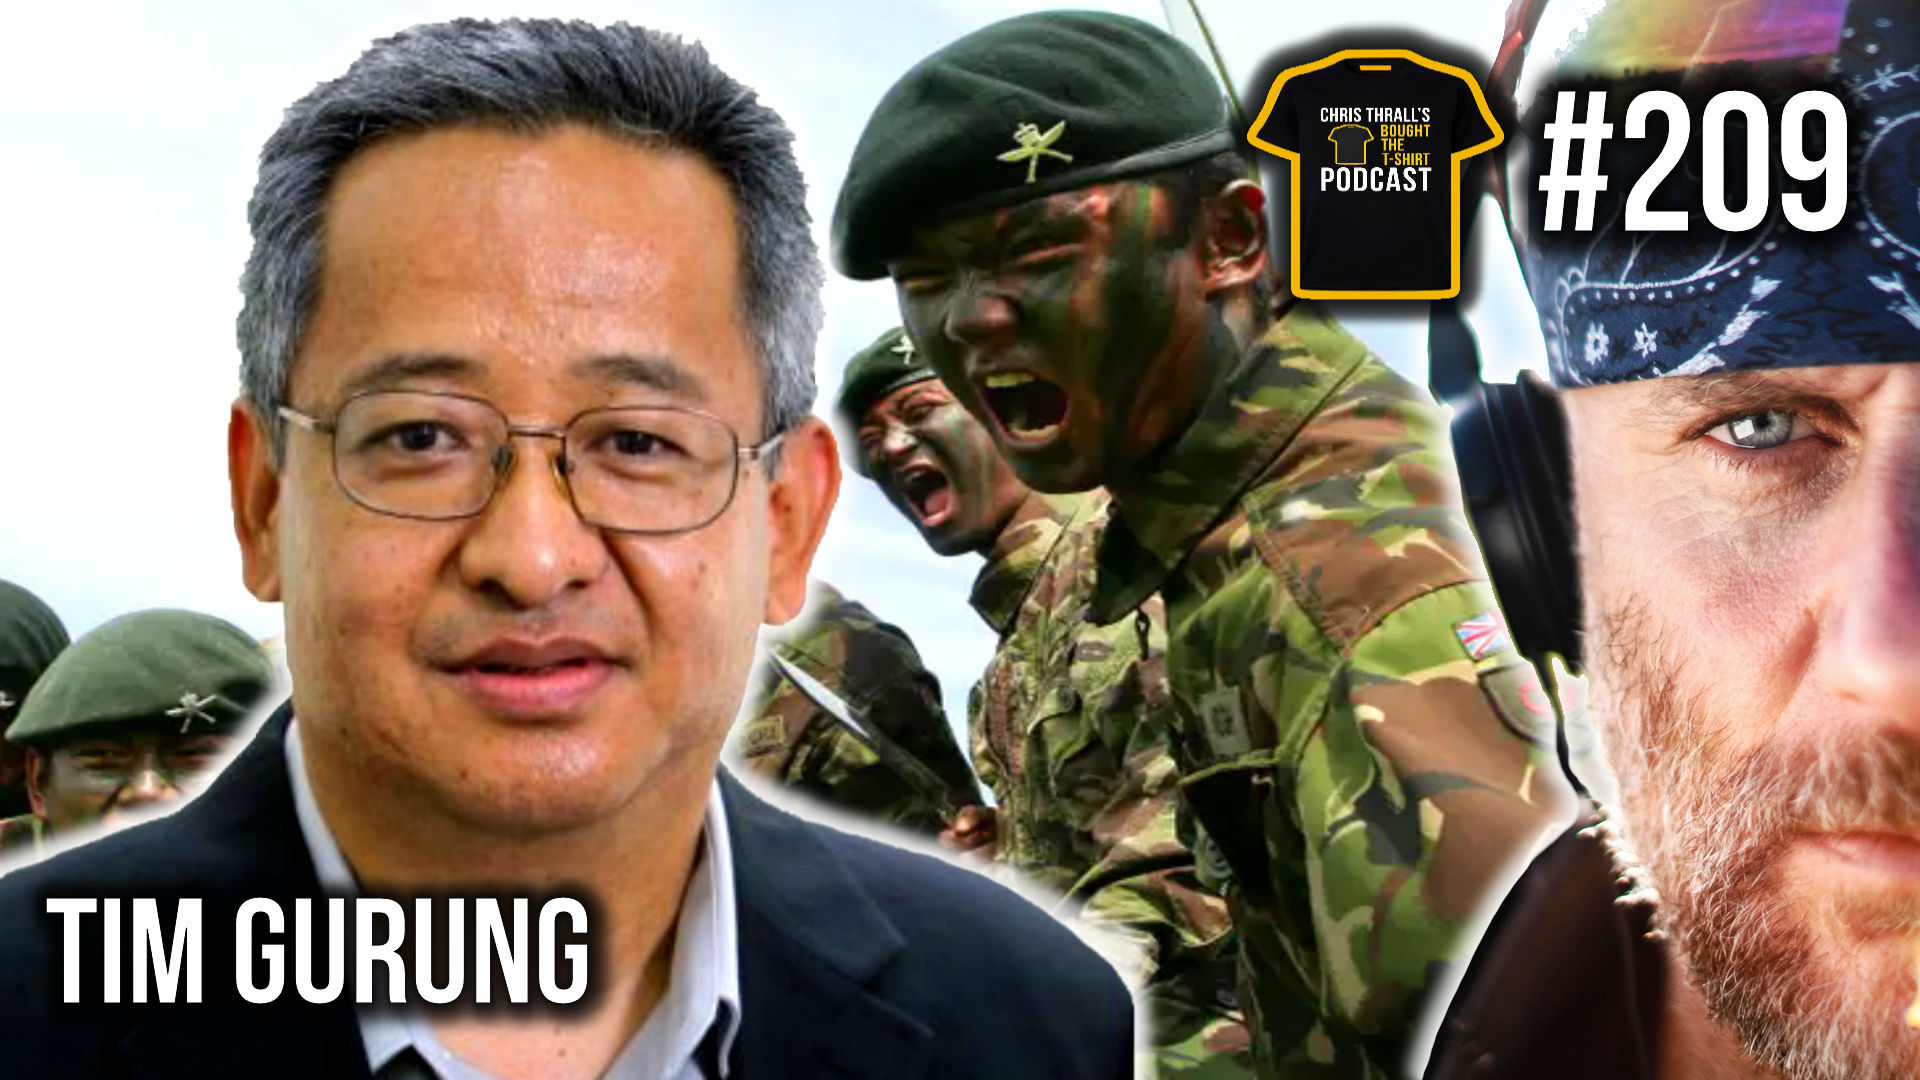 Better To Die Than Be A Coward | The Gurkhas | Podcast #209